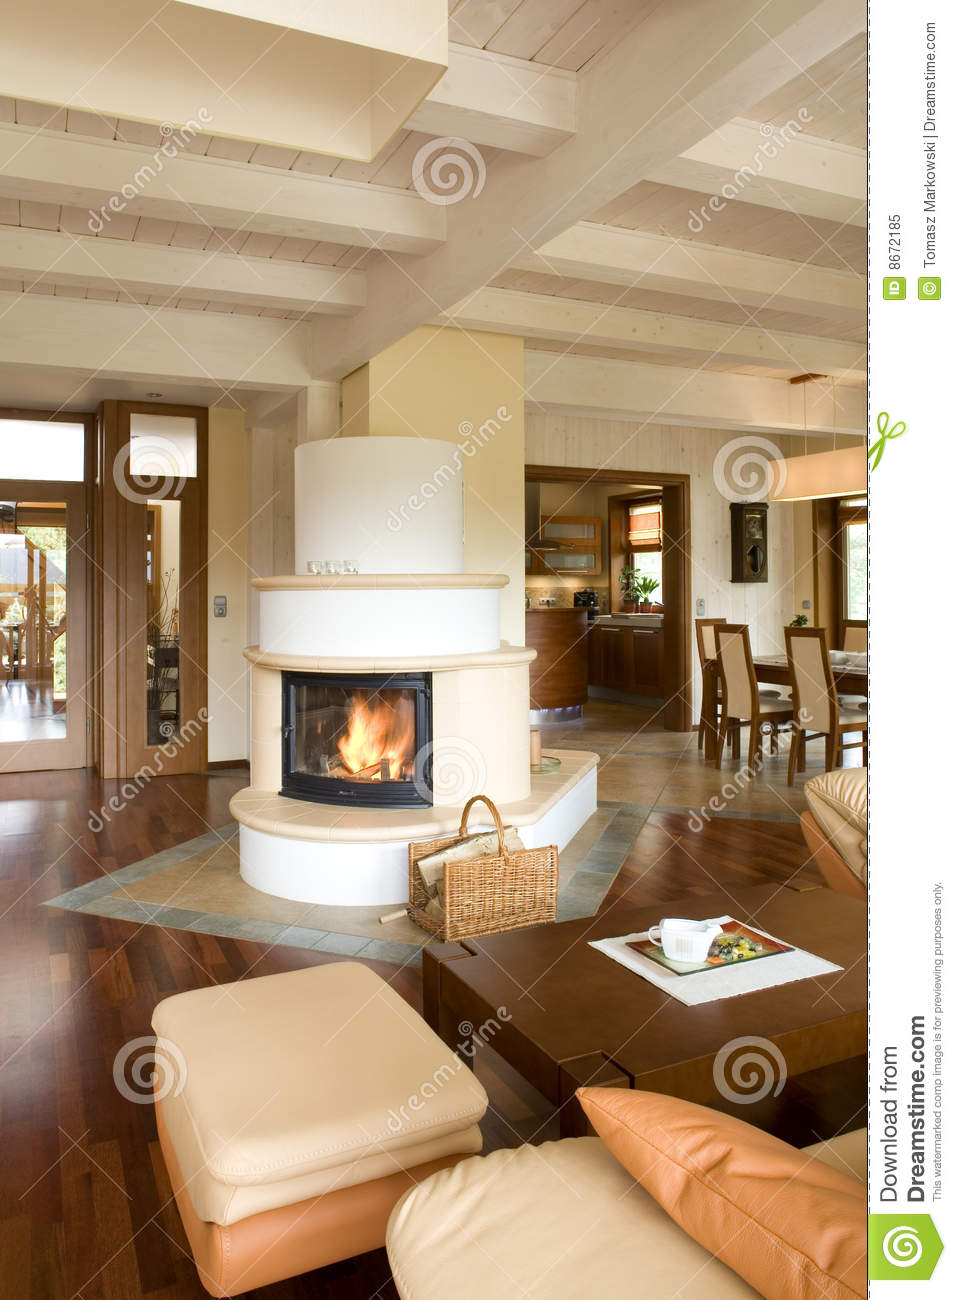 Wohnzimmer In Cream Stylish Modern Living Room With Fireplace Stock Image Image Of